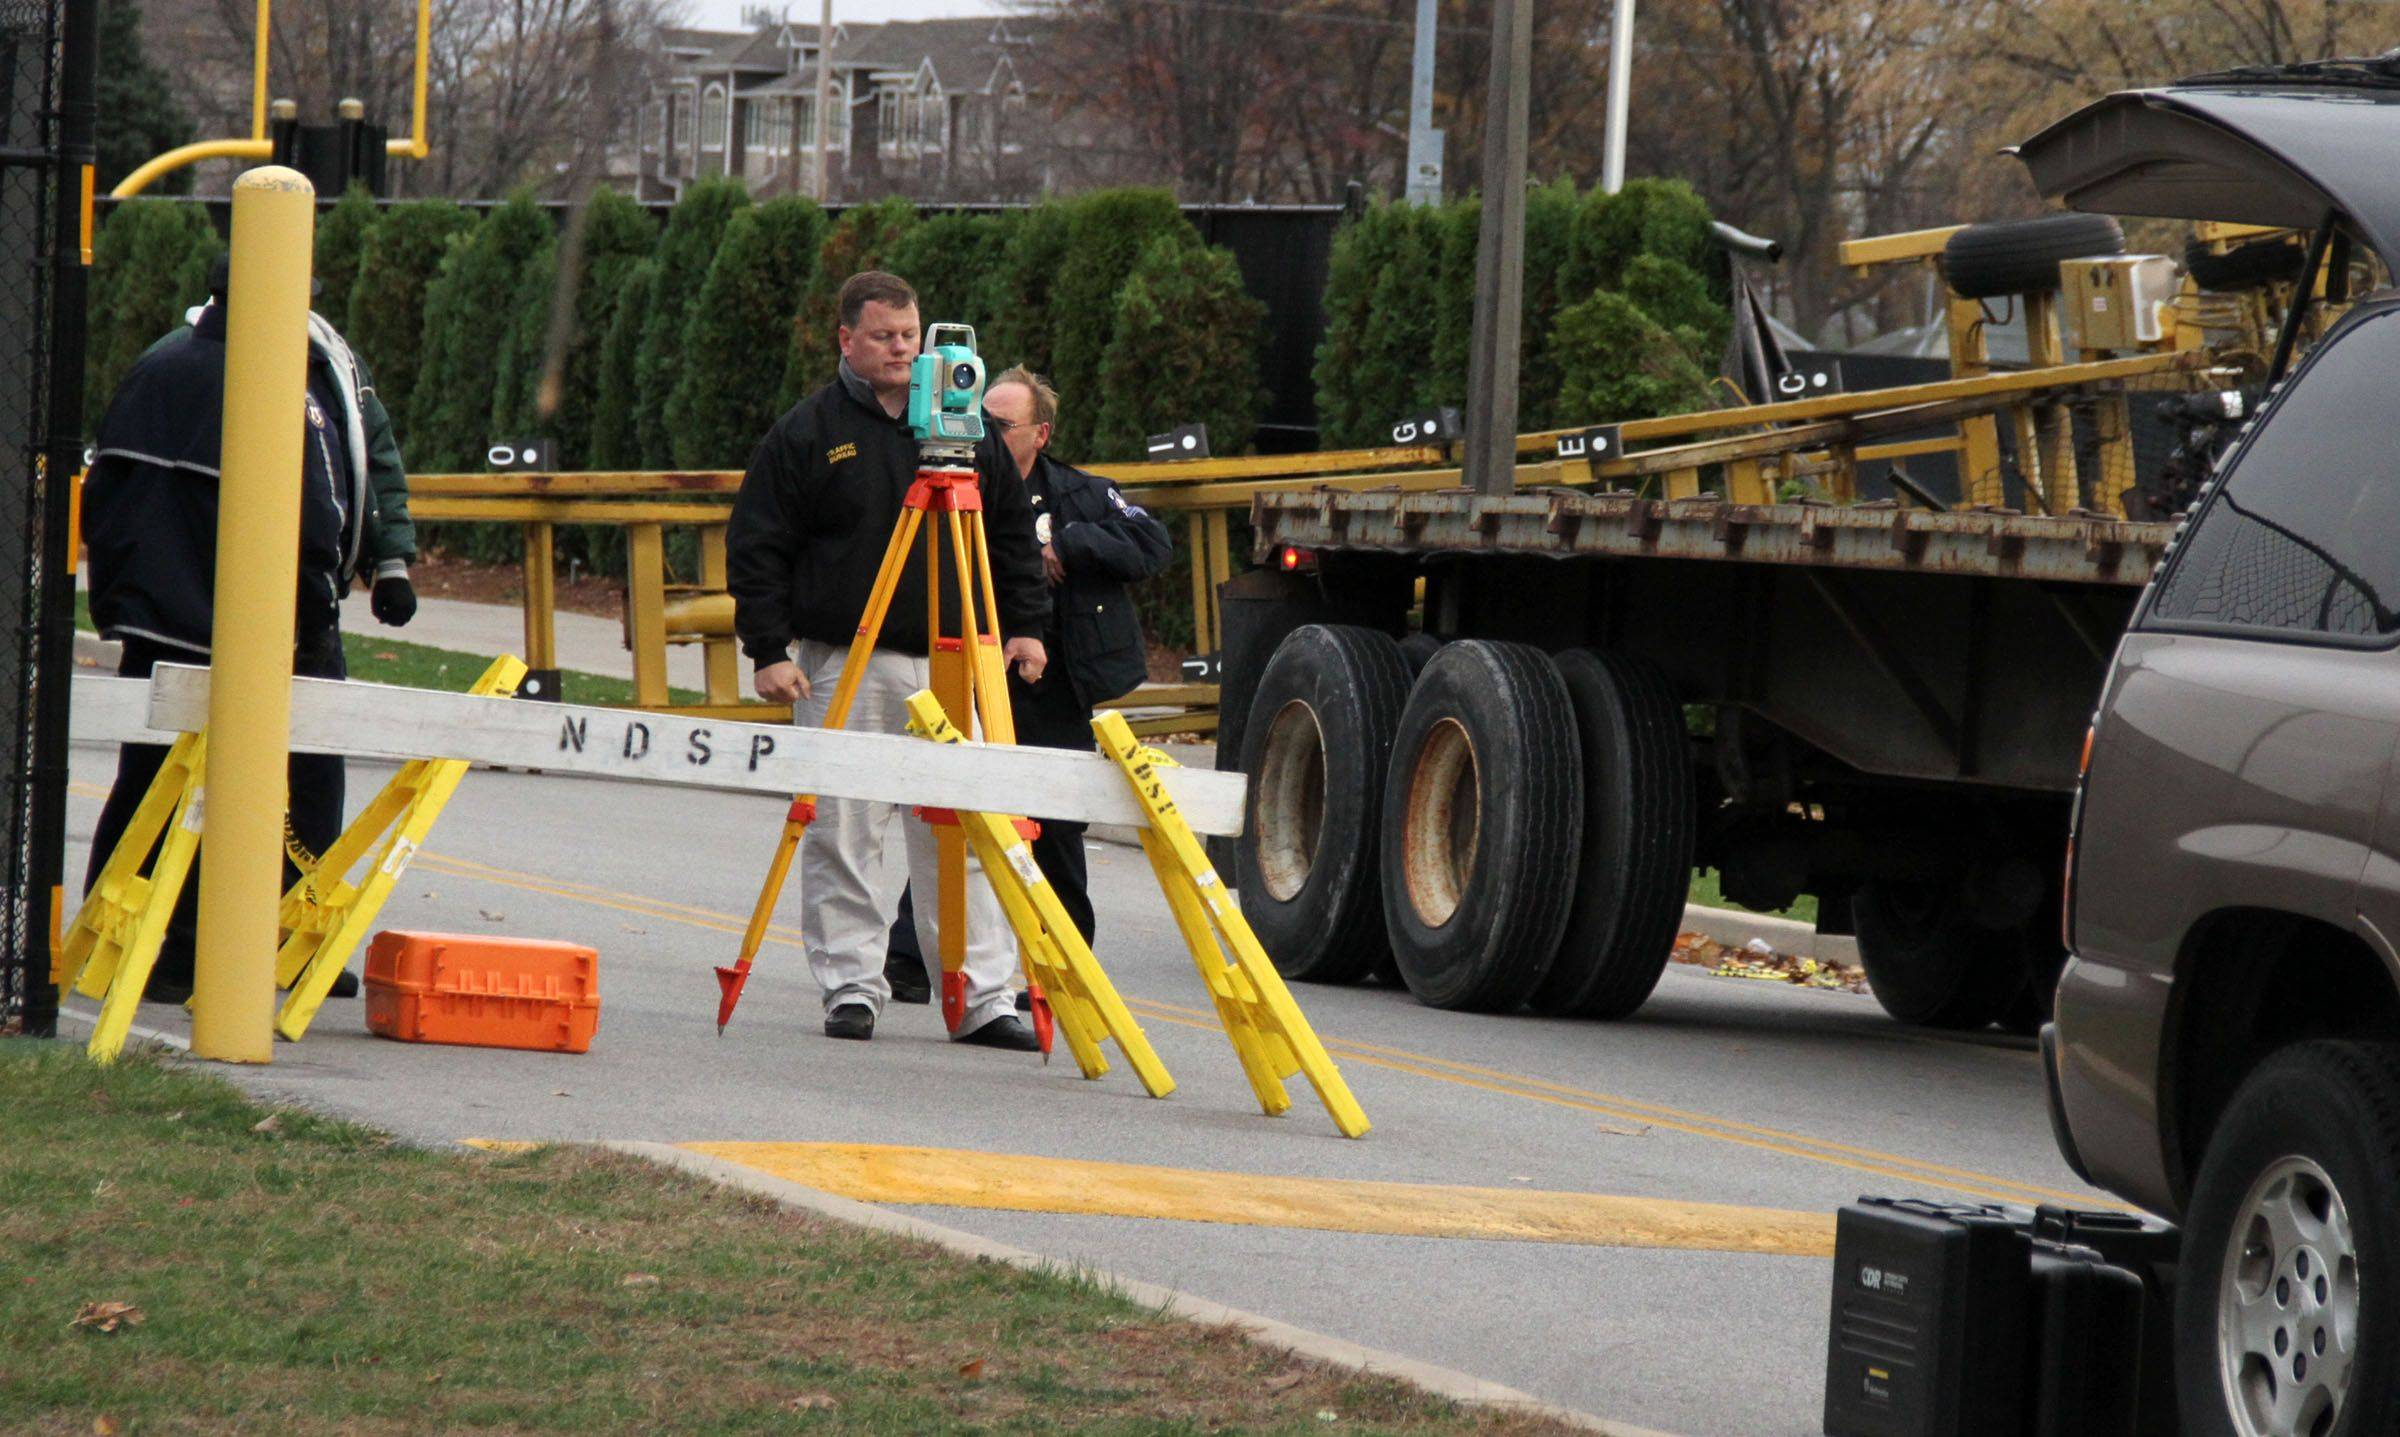 Investigators work next to the aerial lift that toppled over on Oct. 27, 2010, during a University of Notre Dame football practice, killing 20-year-old Declan Sullivan of Long Grove. Notre Dame, with help from Sullivan's family, has launched an aerial lift safety program.